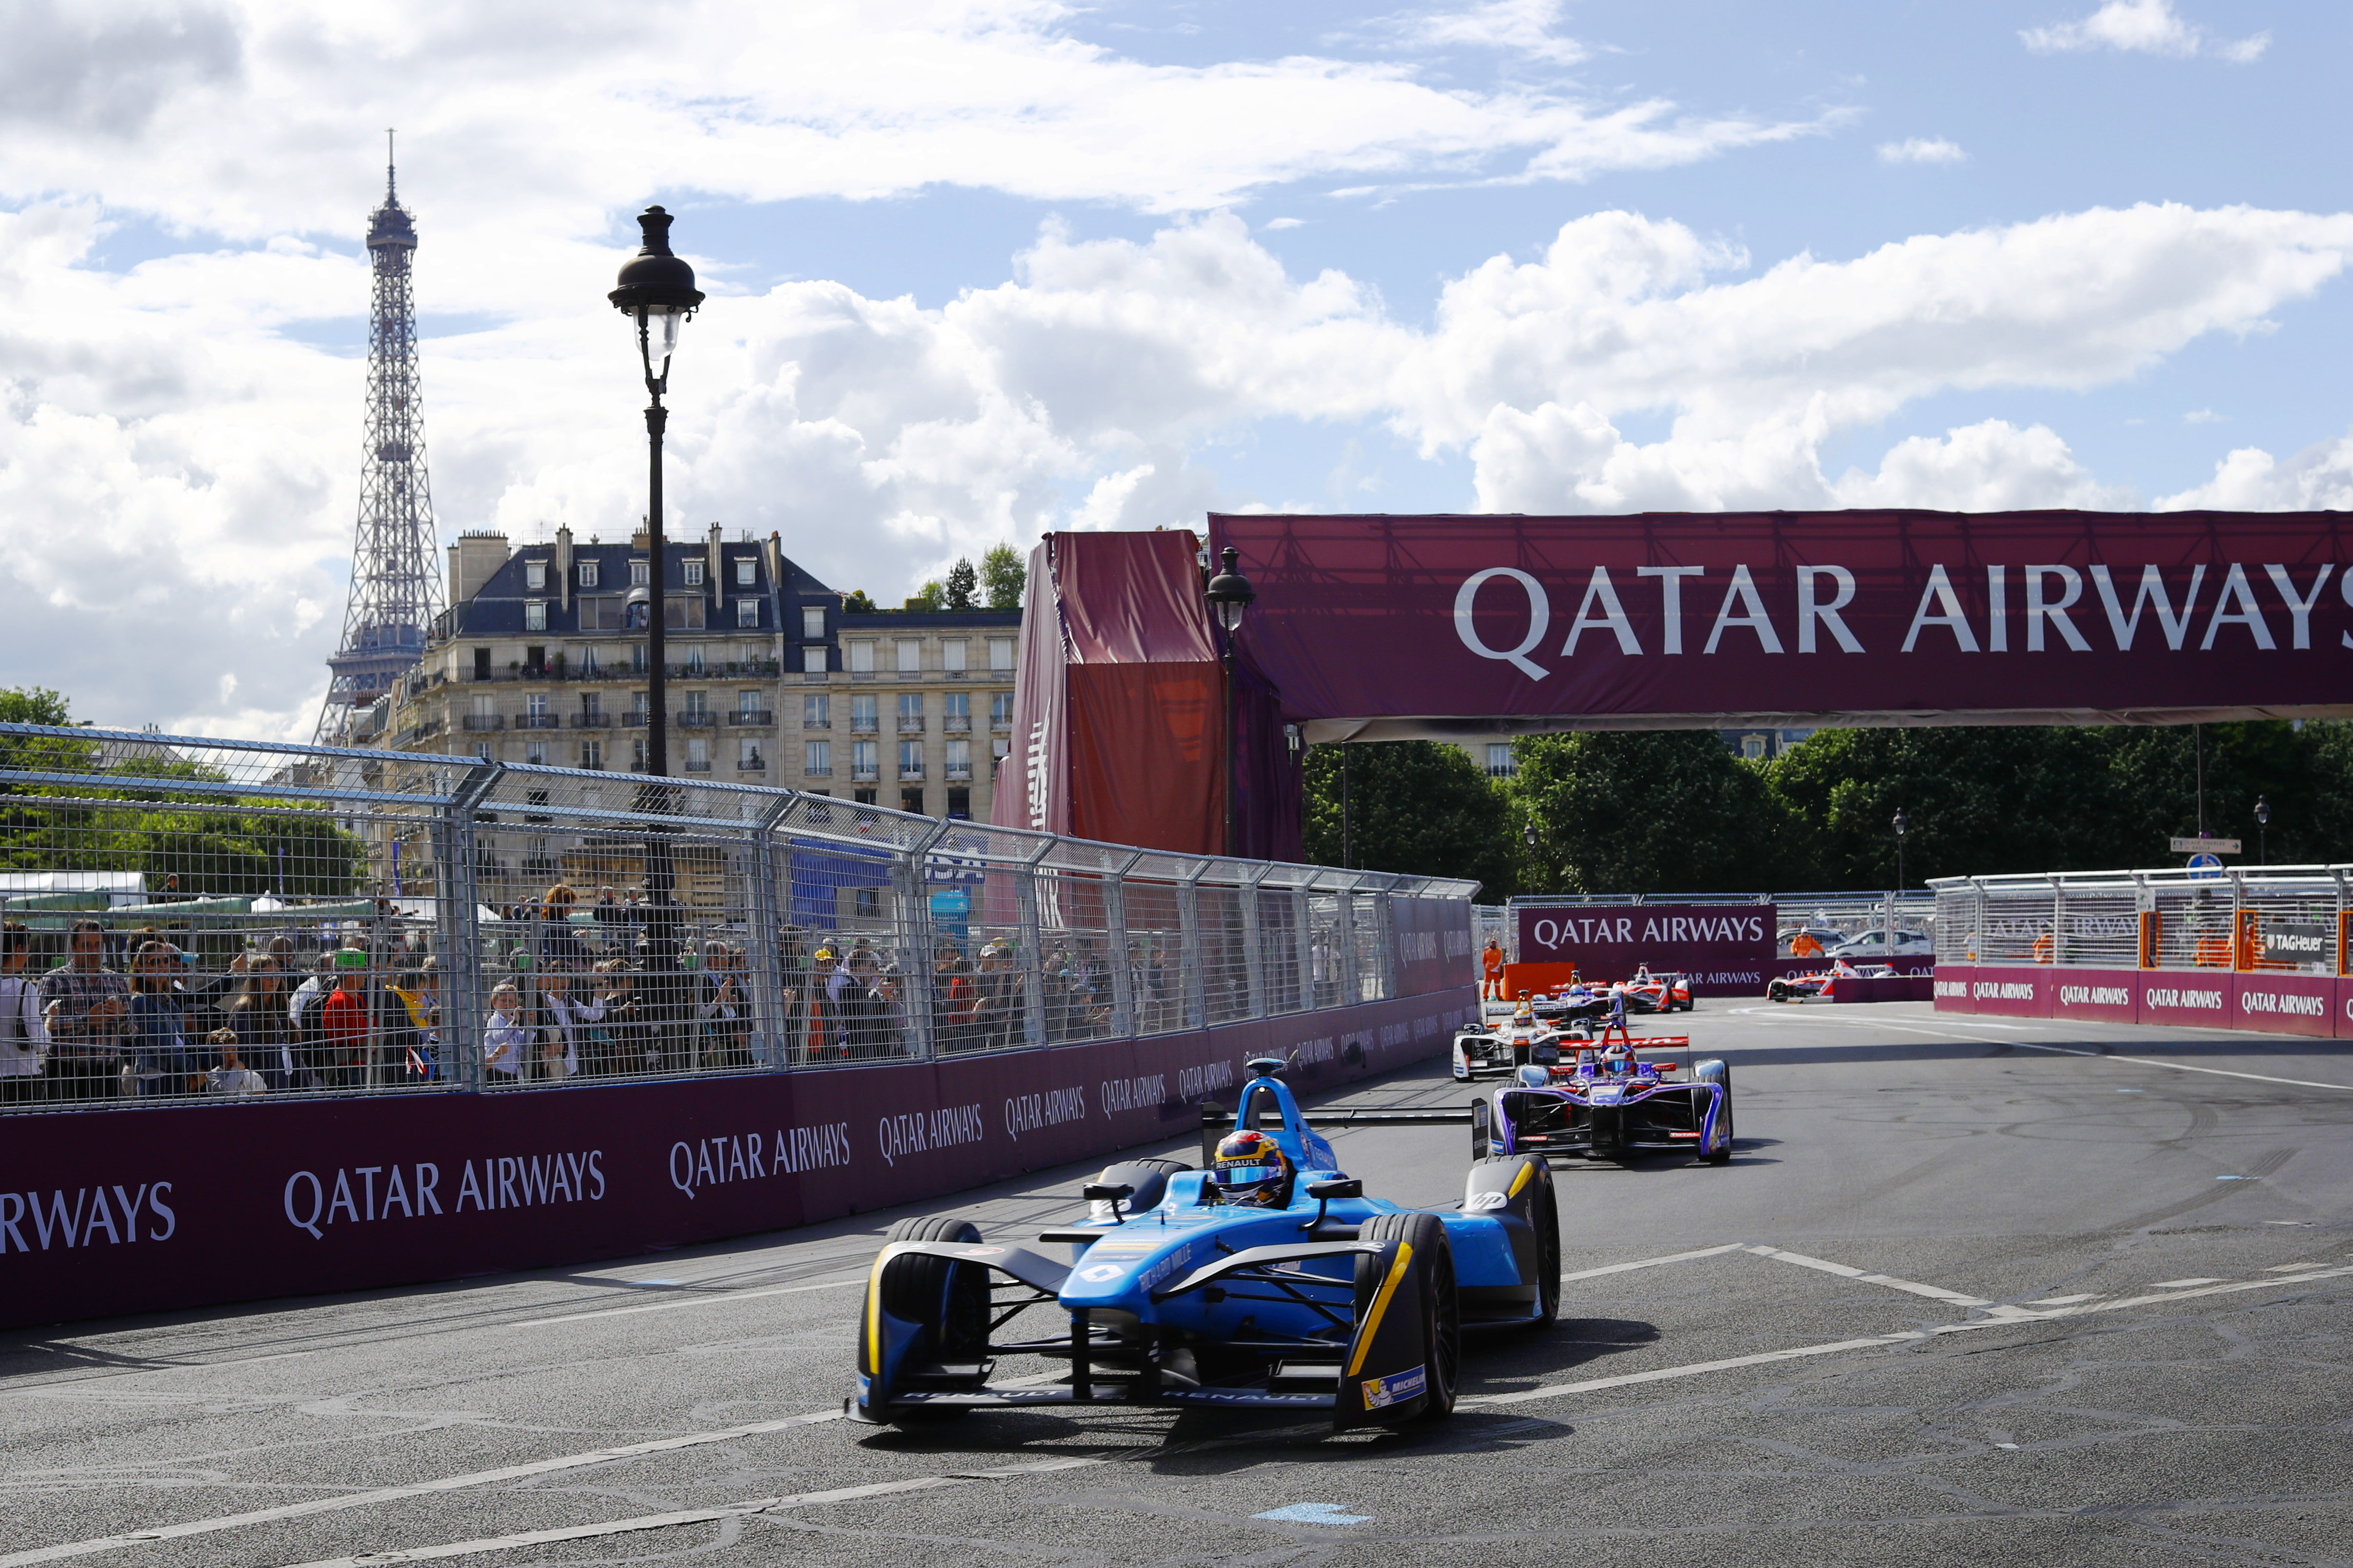 monaco eprix formula e race news photos videos and social media buzz. Black Bedroom Furniture Sets. Home Design Ideas